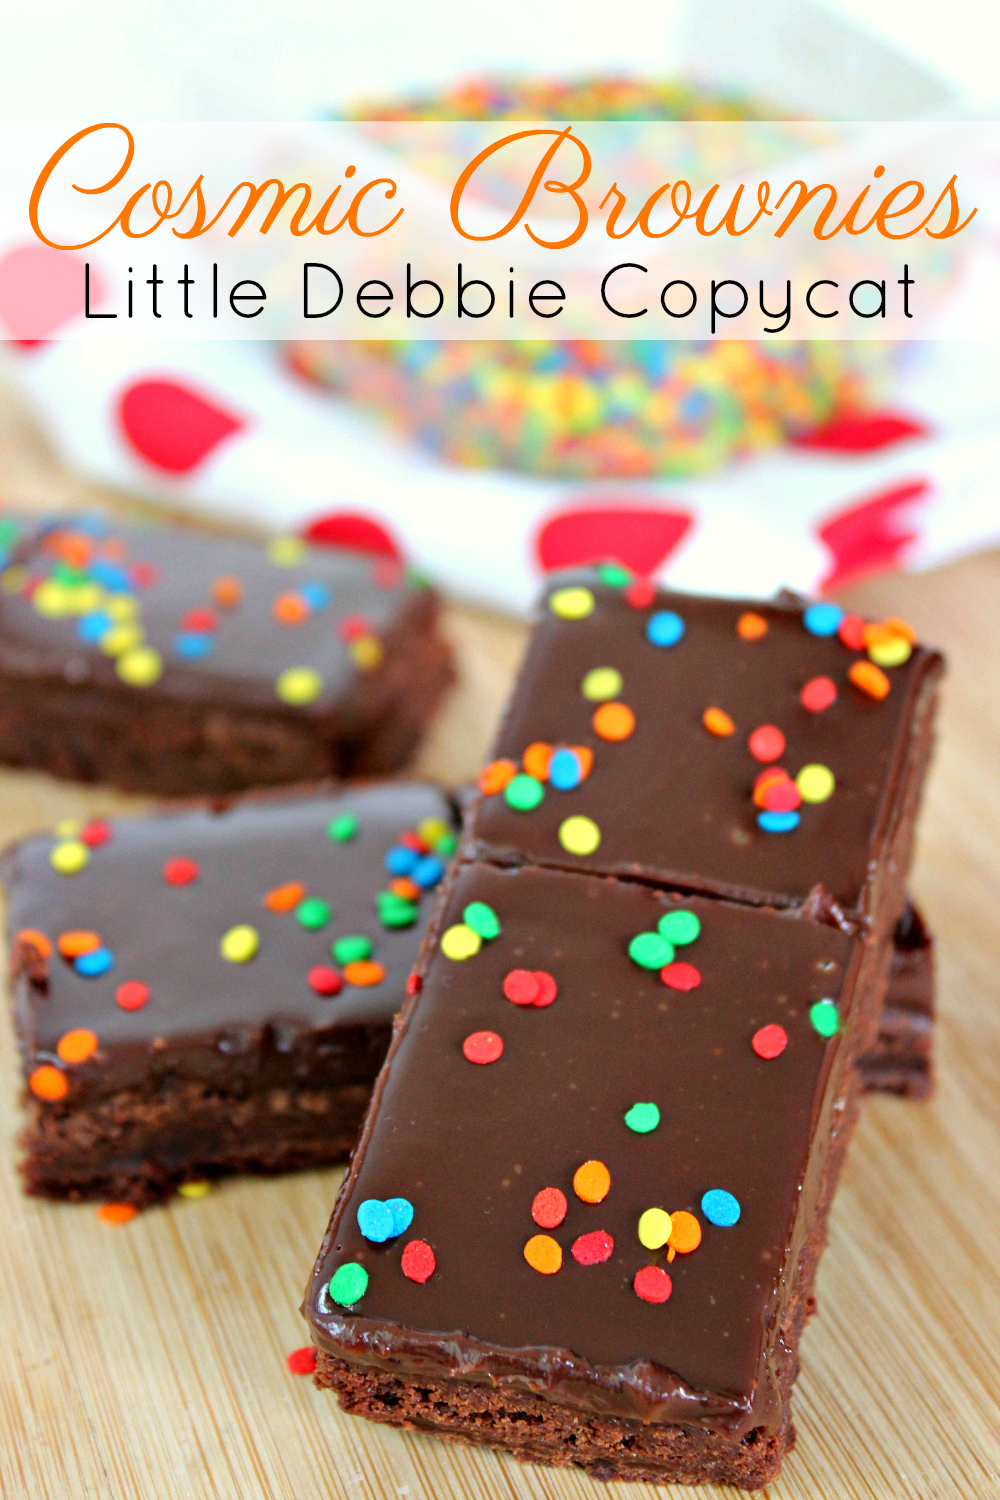 Cosmic Brownies Little Debbie Copycat Recipe